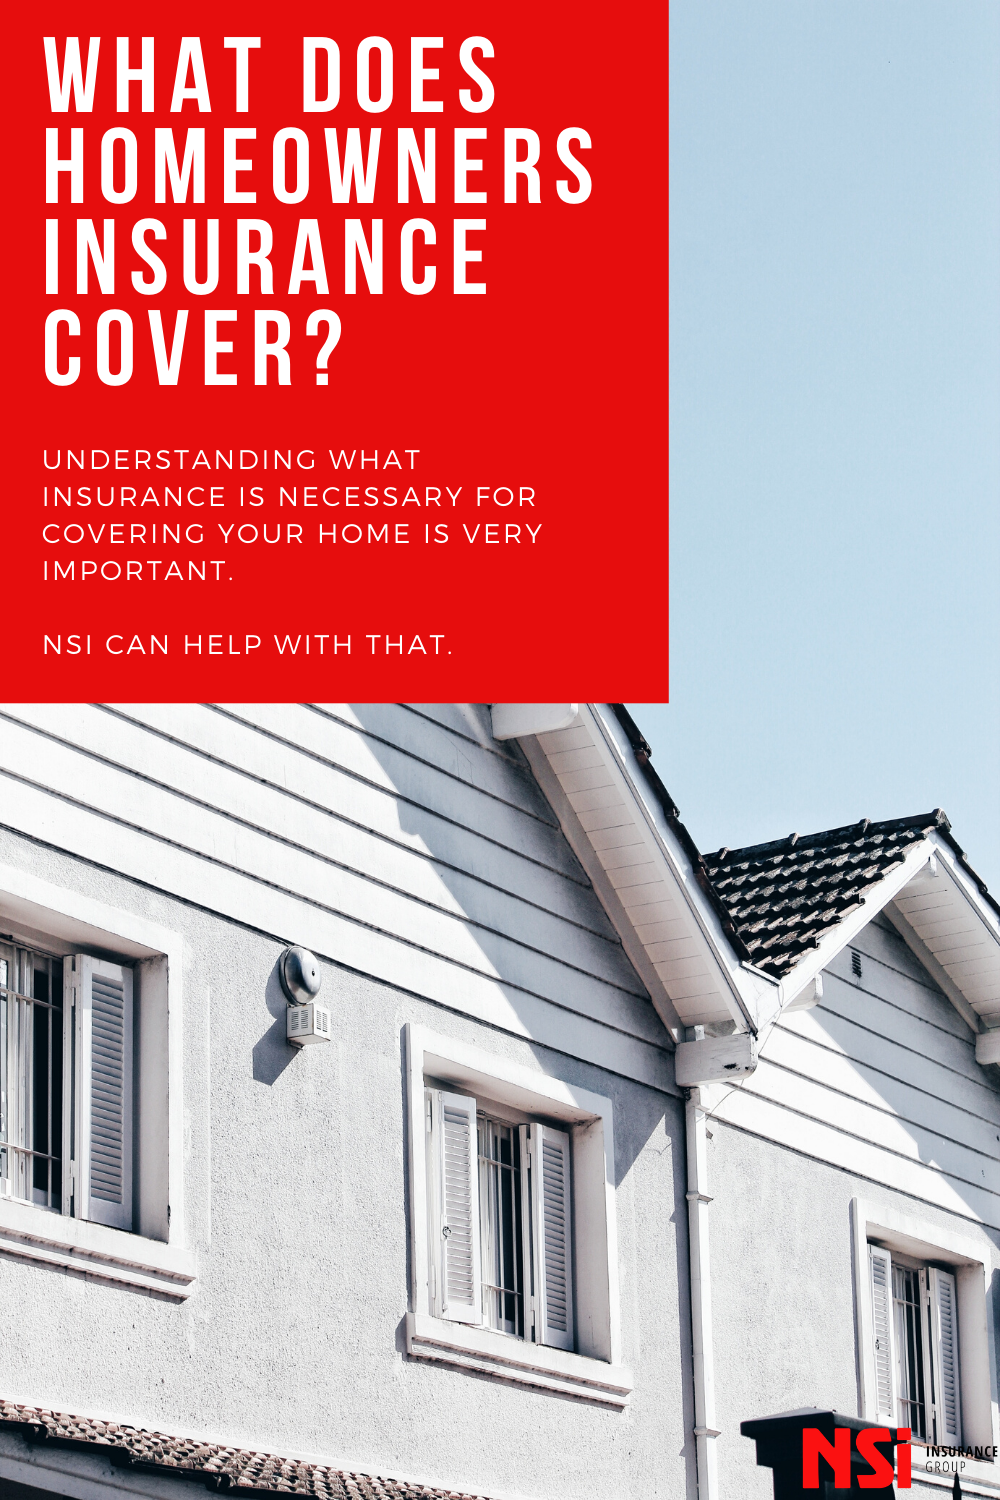 Understanding What Insurance Is Necessary For Covering Your Home